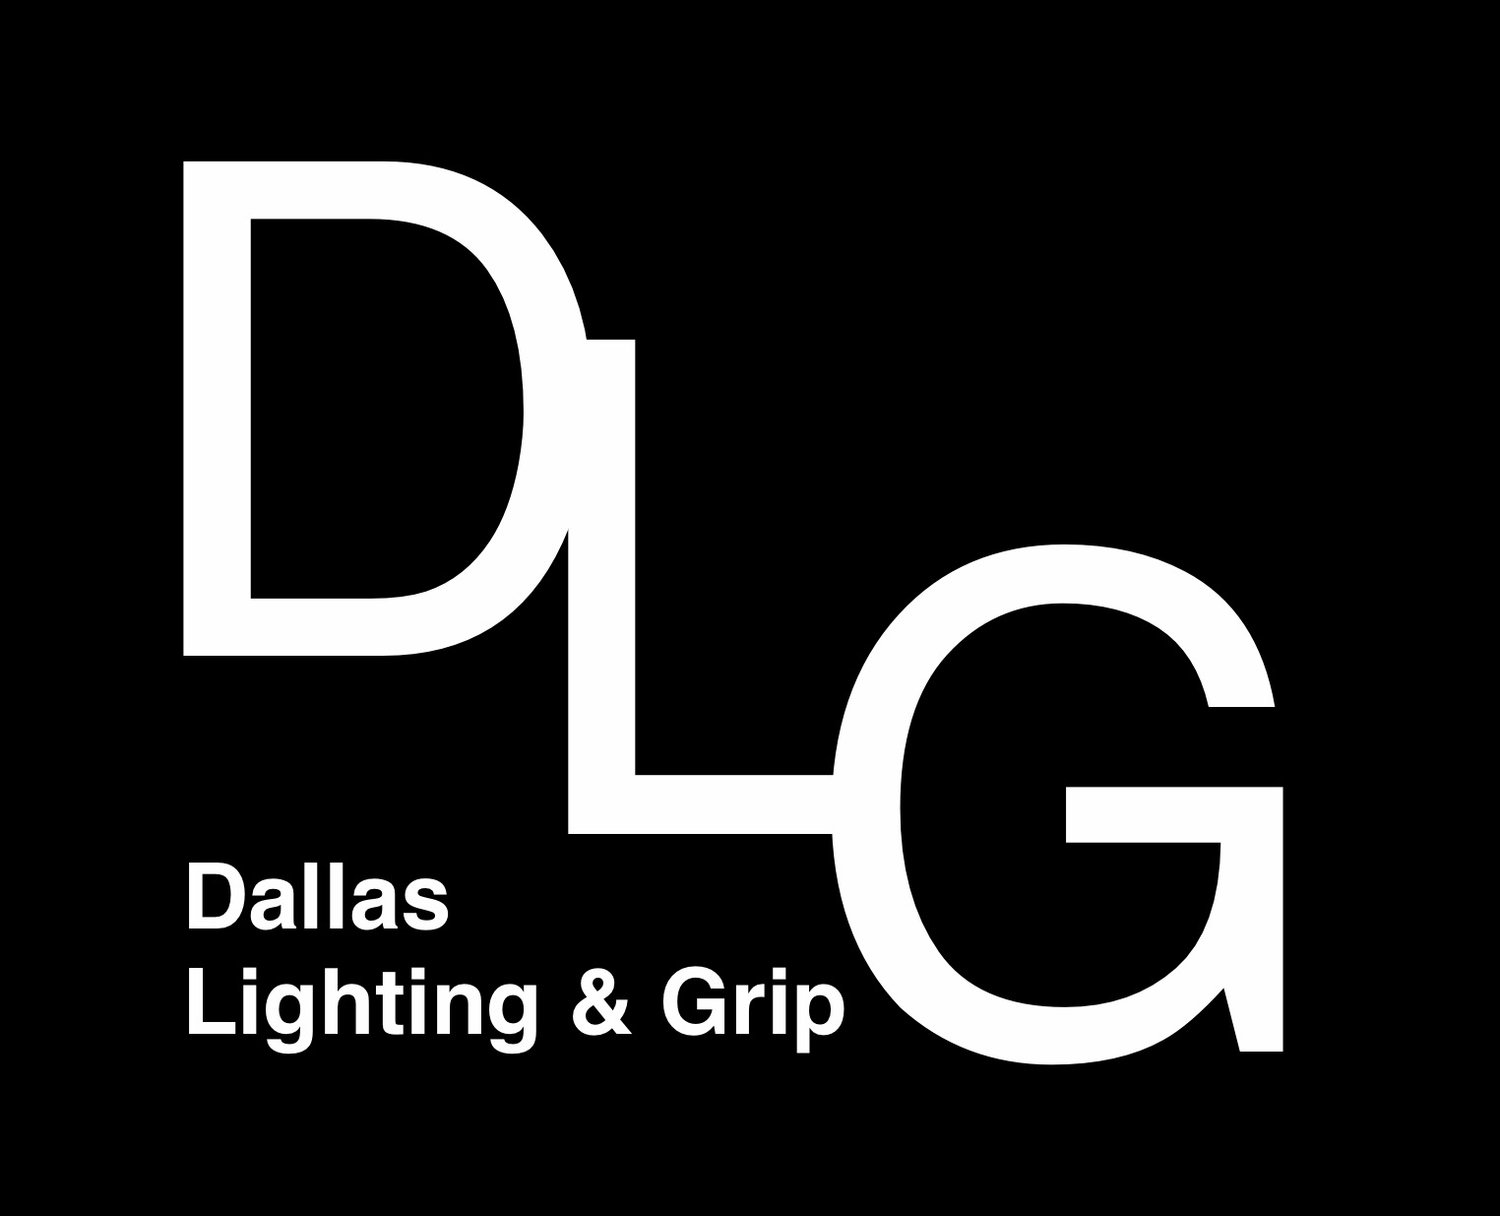 Dallas Lighting & Grip Sprinter